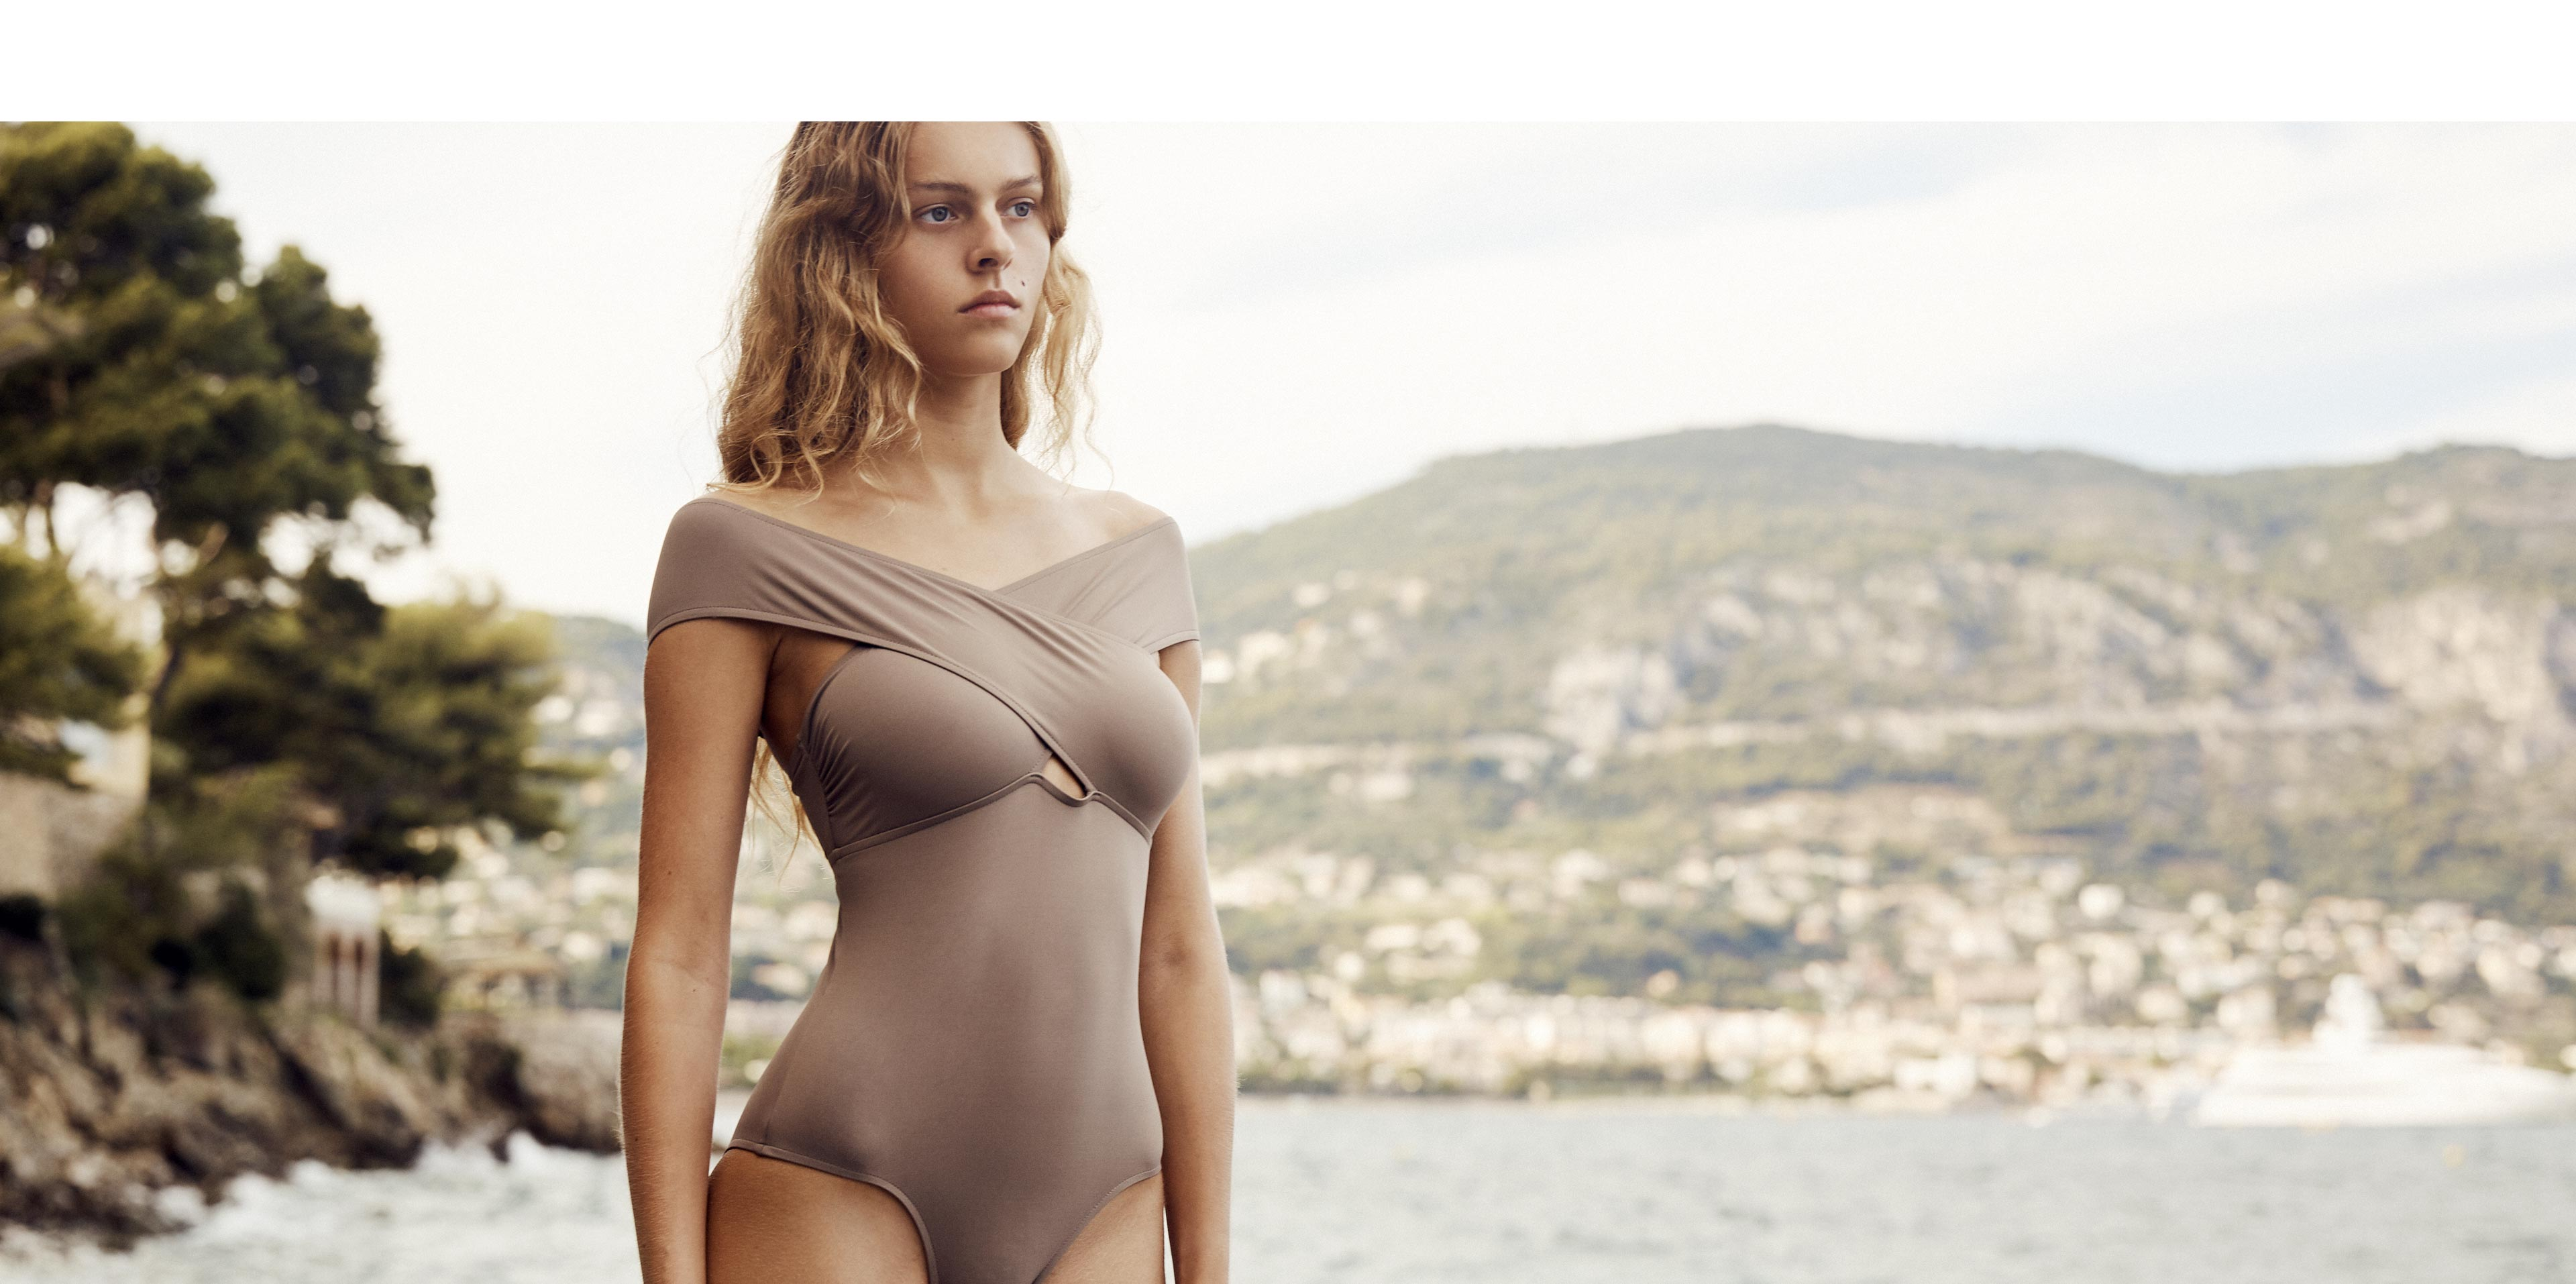 BONDI BORN Sustainable Australian Made Swimwear and Resort Wear. Womens Fashion online. Free shipping available